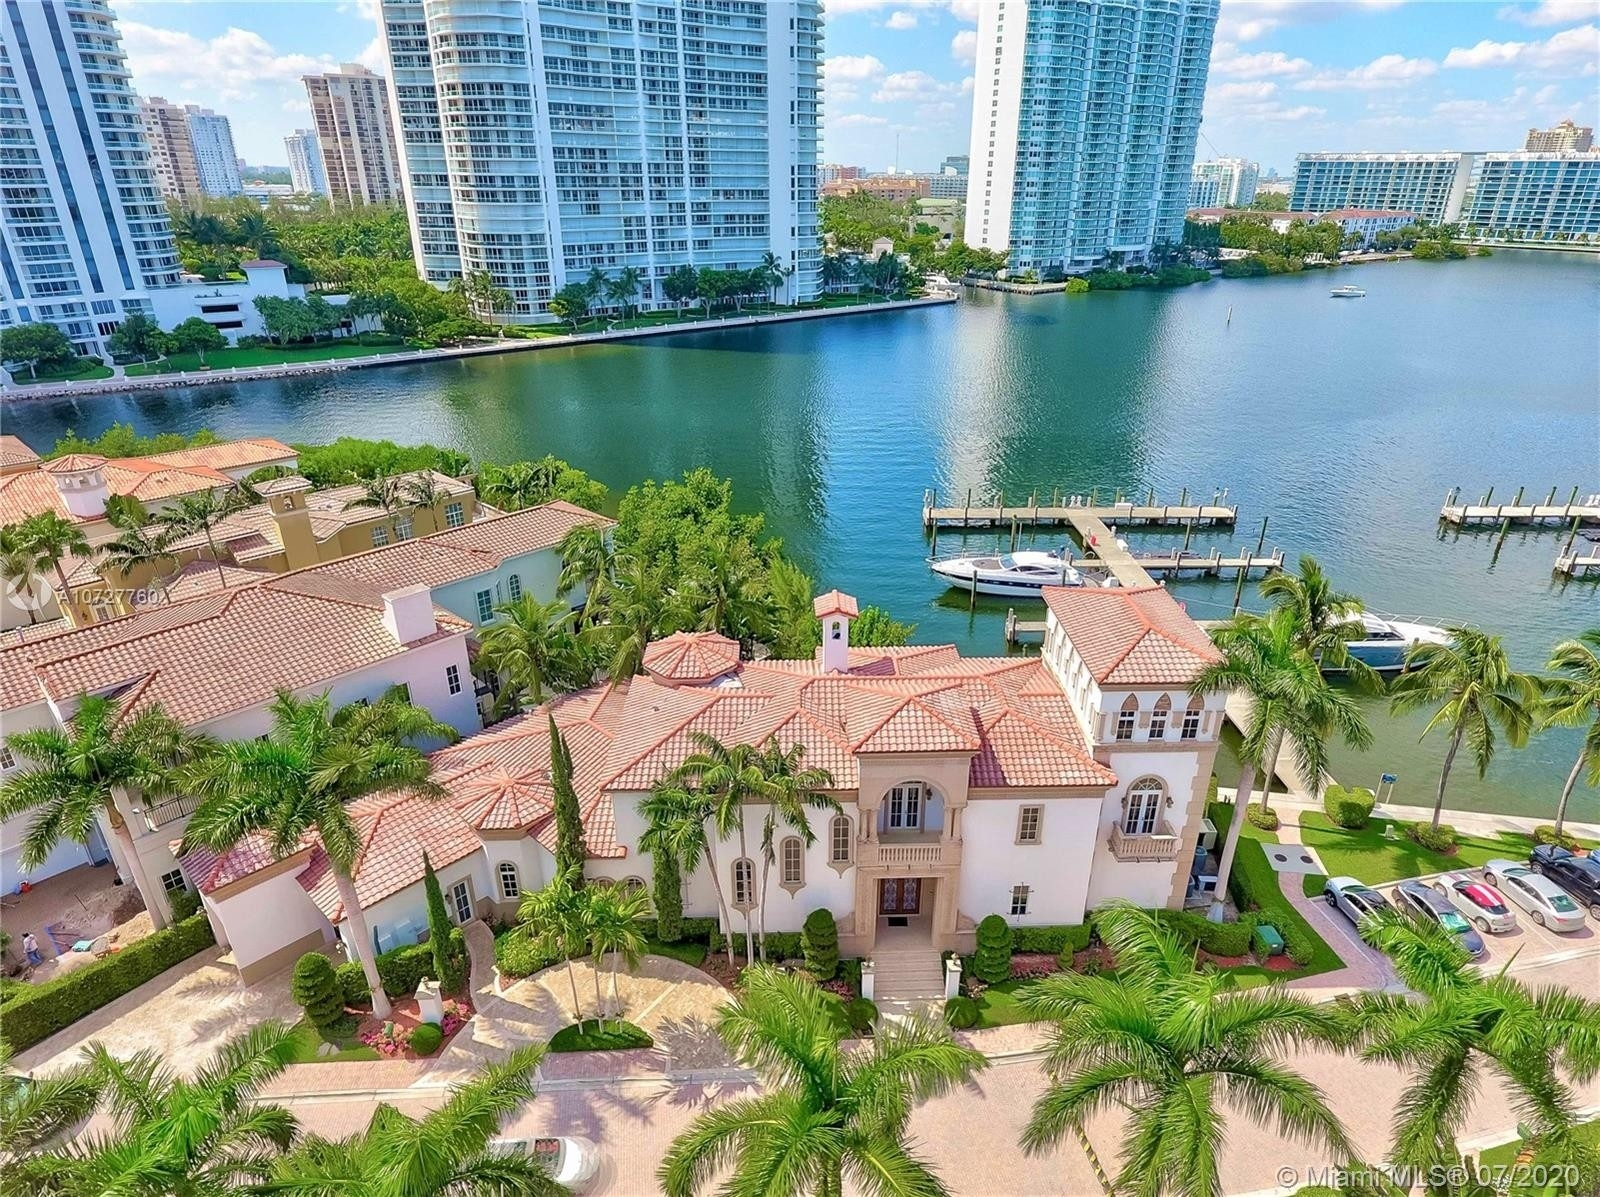 Property at Aventura, FL 33160